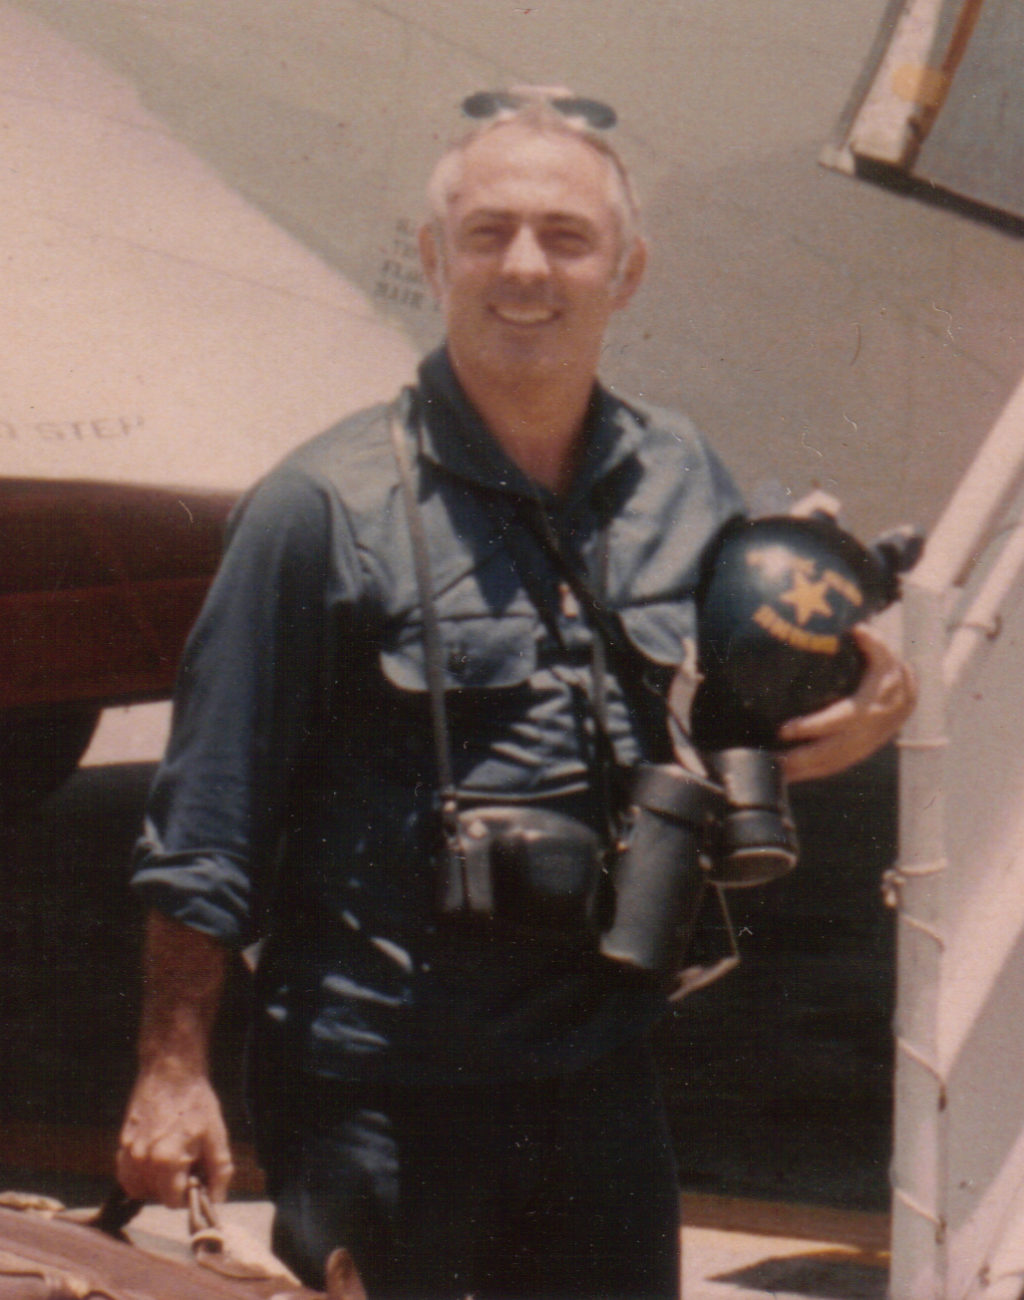 Consul General Francis Terry McNamara in May, 1975 boarding a Navy aircraft at Subic Naval Base after evacuating from Can Tho. By Sciacchitano - Own work, CC BY-SA 3.0, https://commons.wikimedia.org/w/index.php?curid=7248178